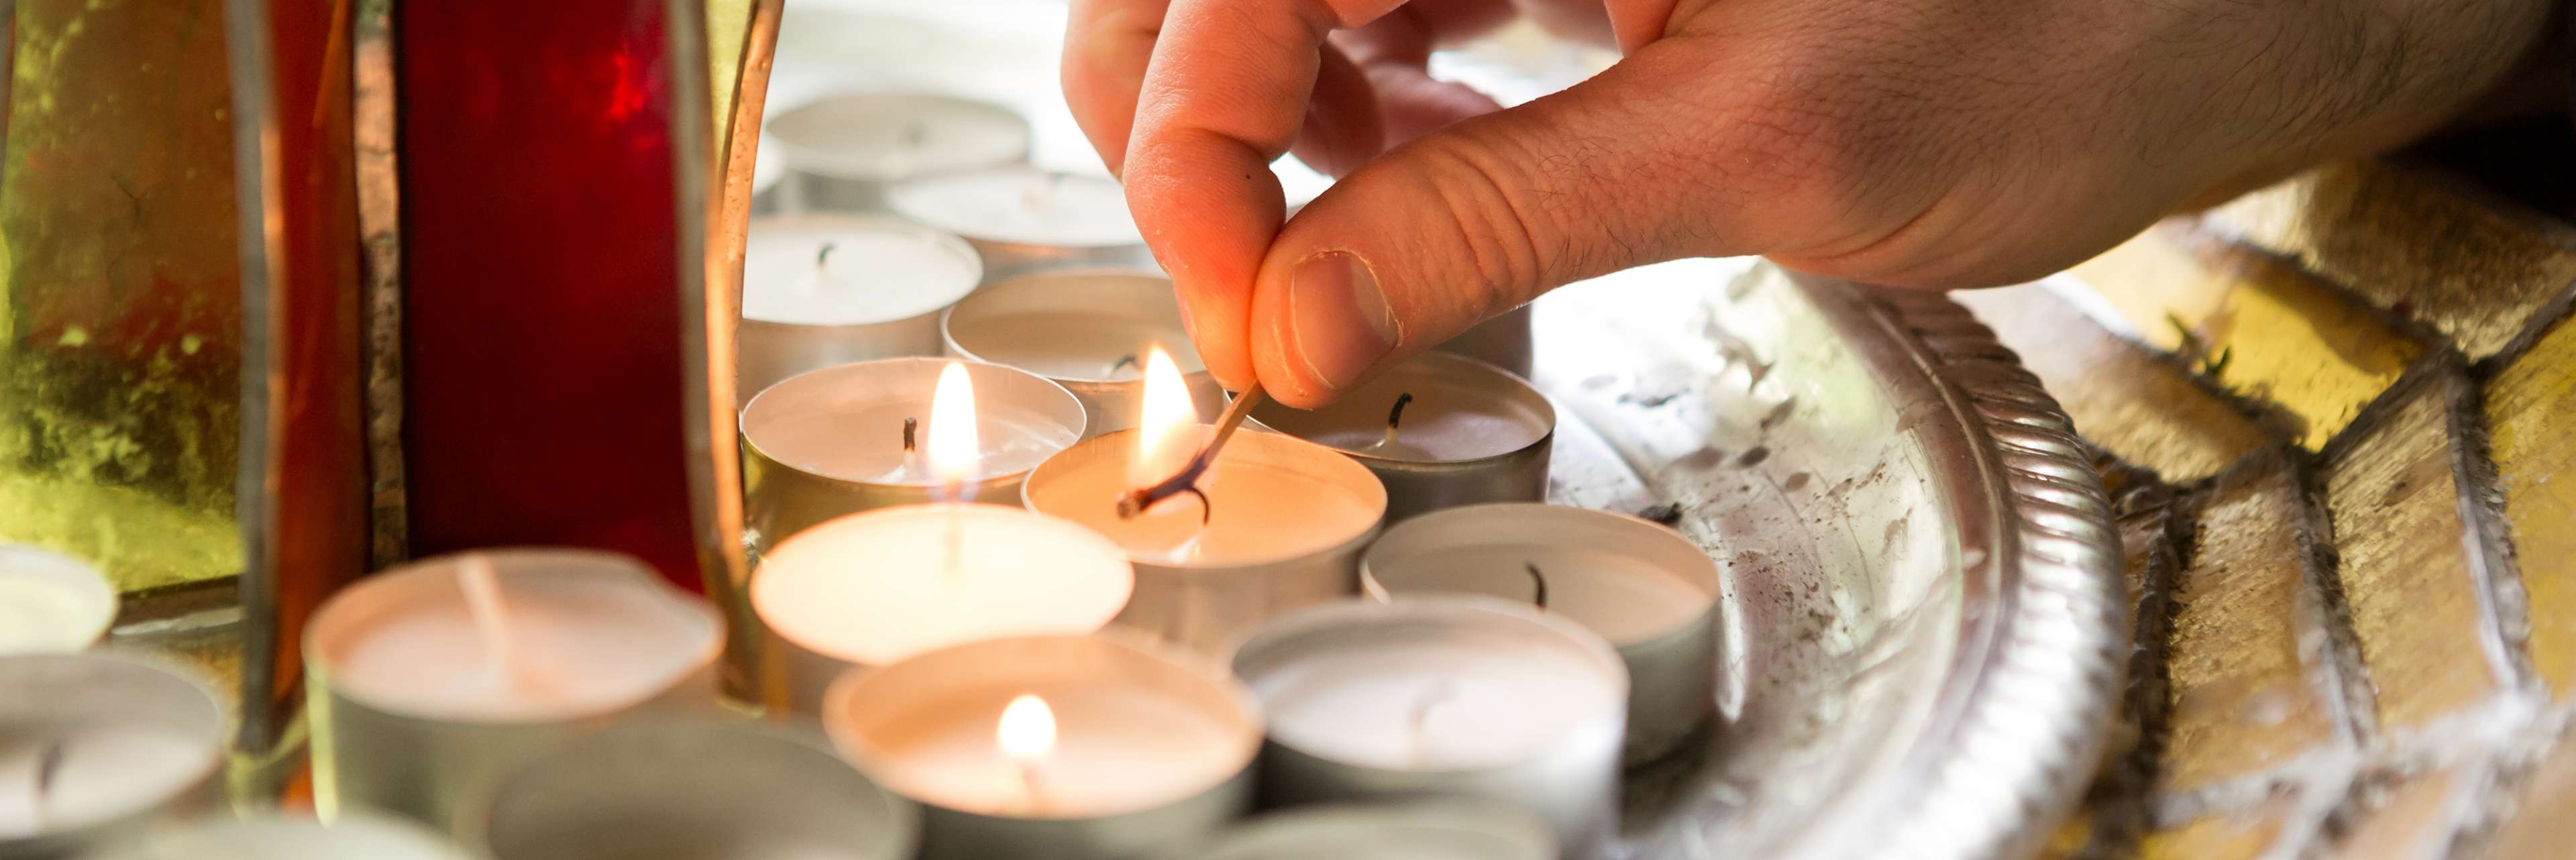 Hand writing a candle